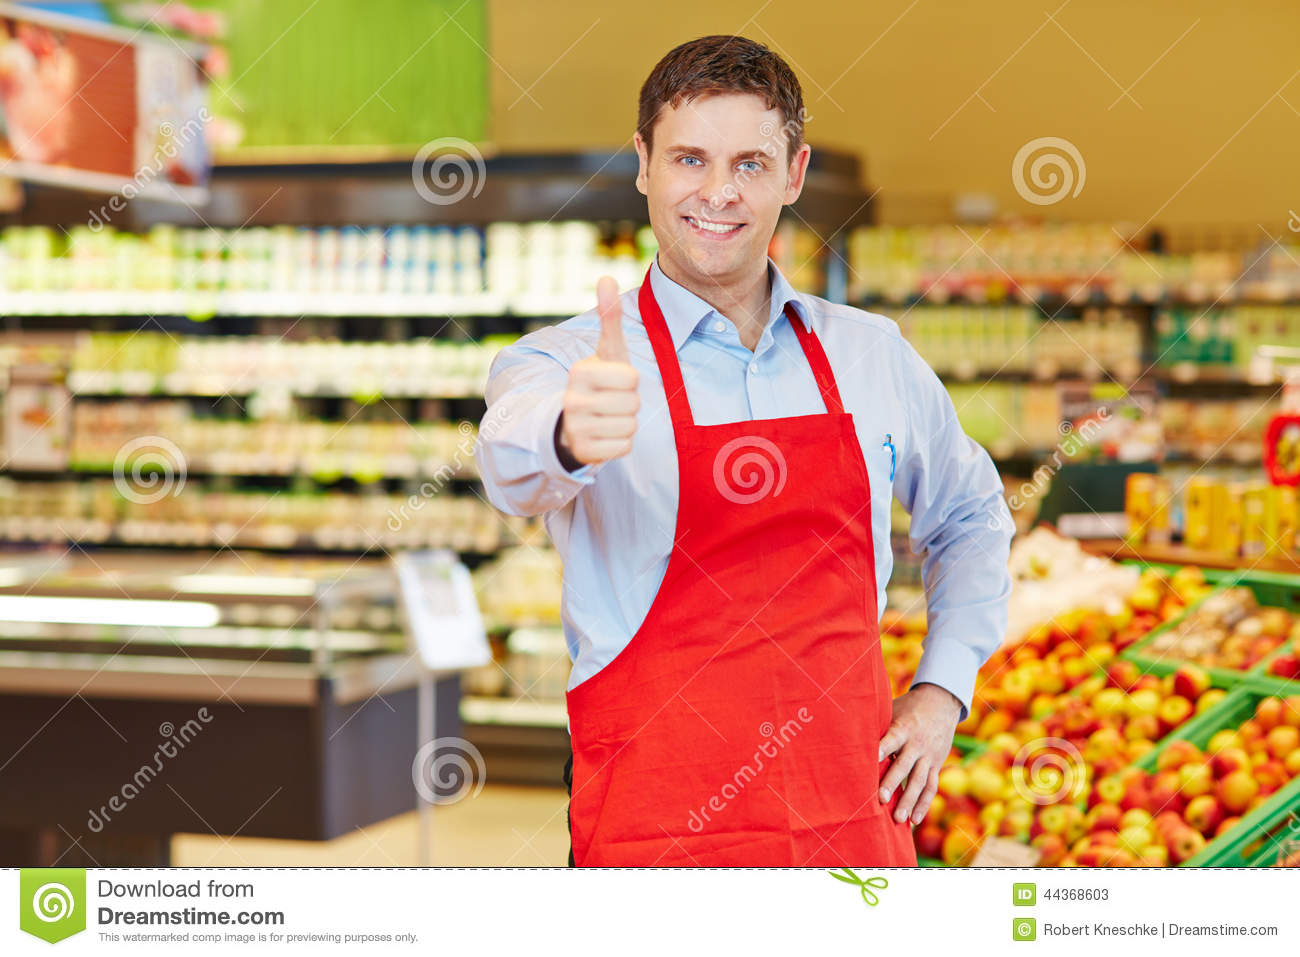 Roles and Responsibilities of a Store Manager